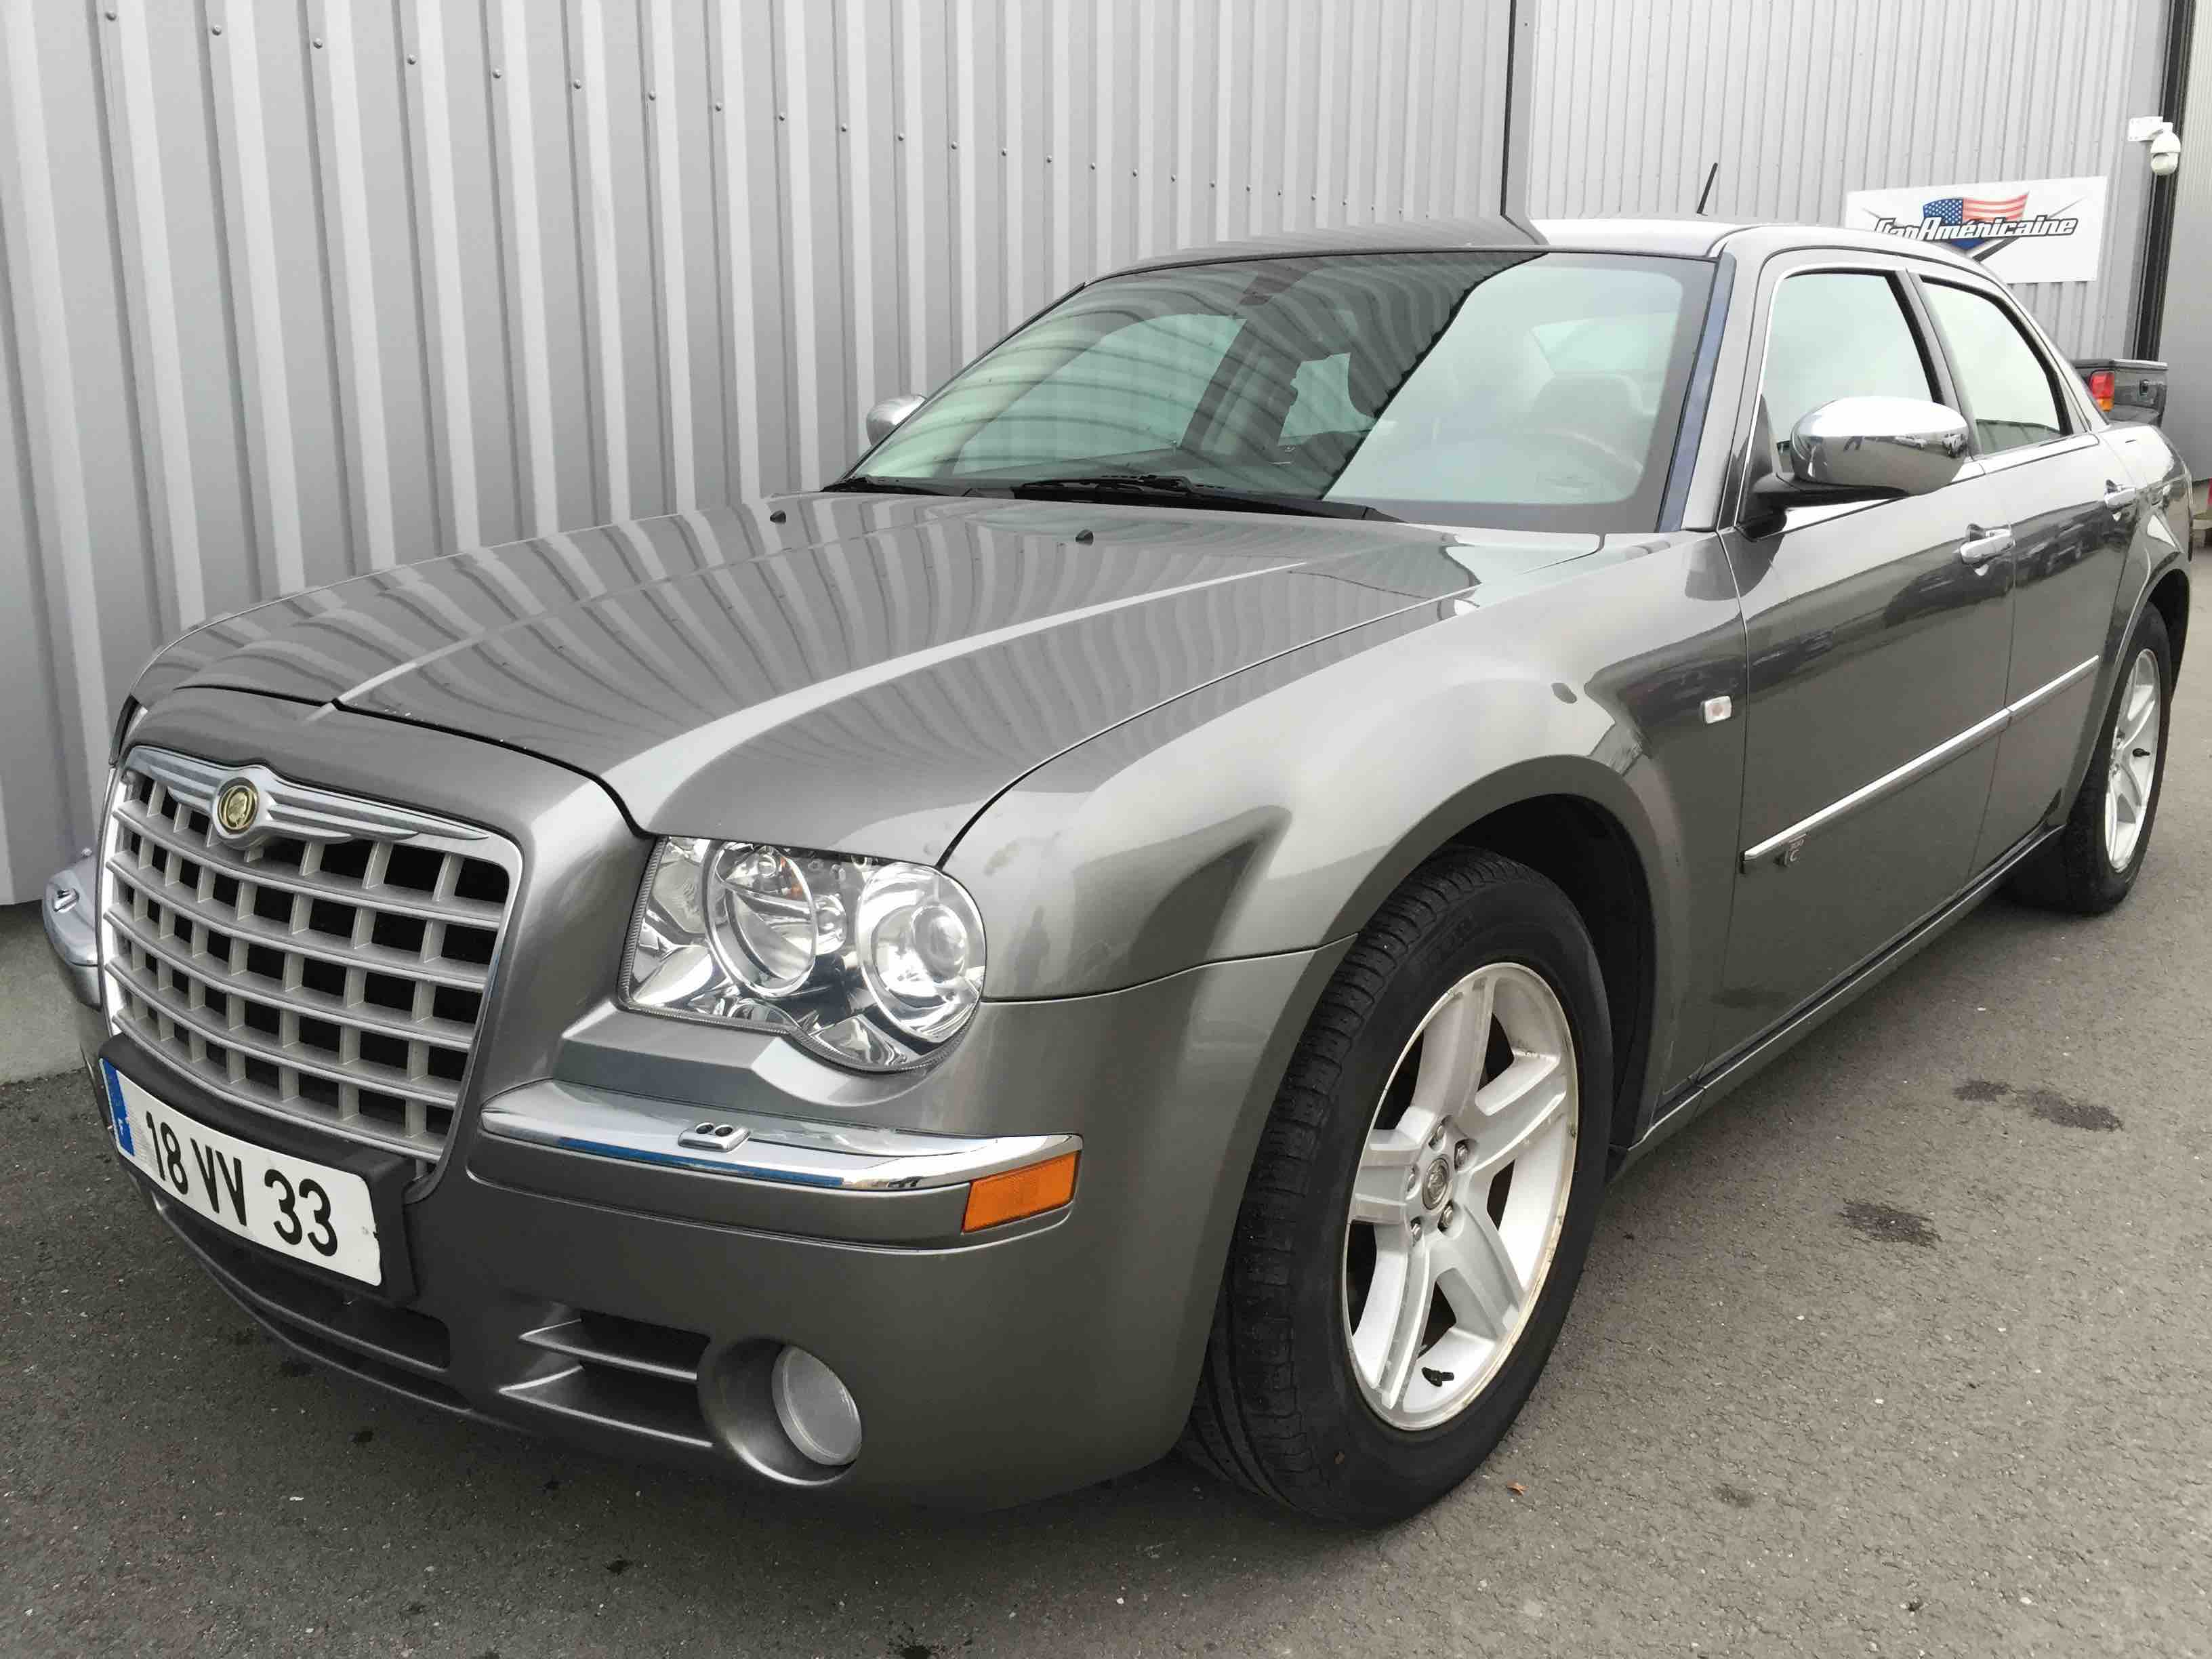 CHRYSLER 300 C CRD 3L V6